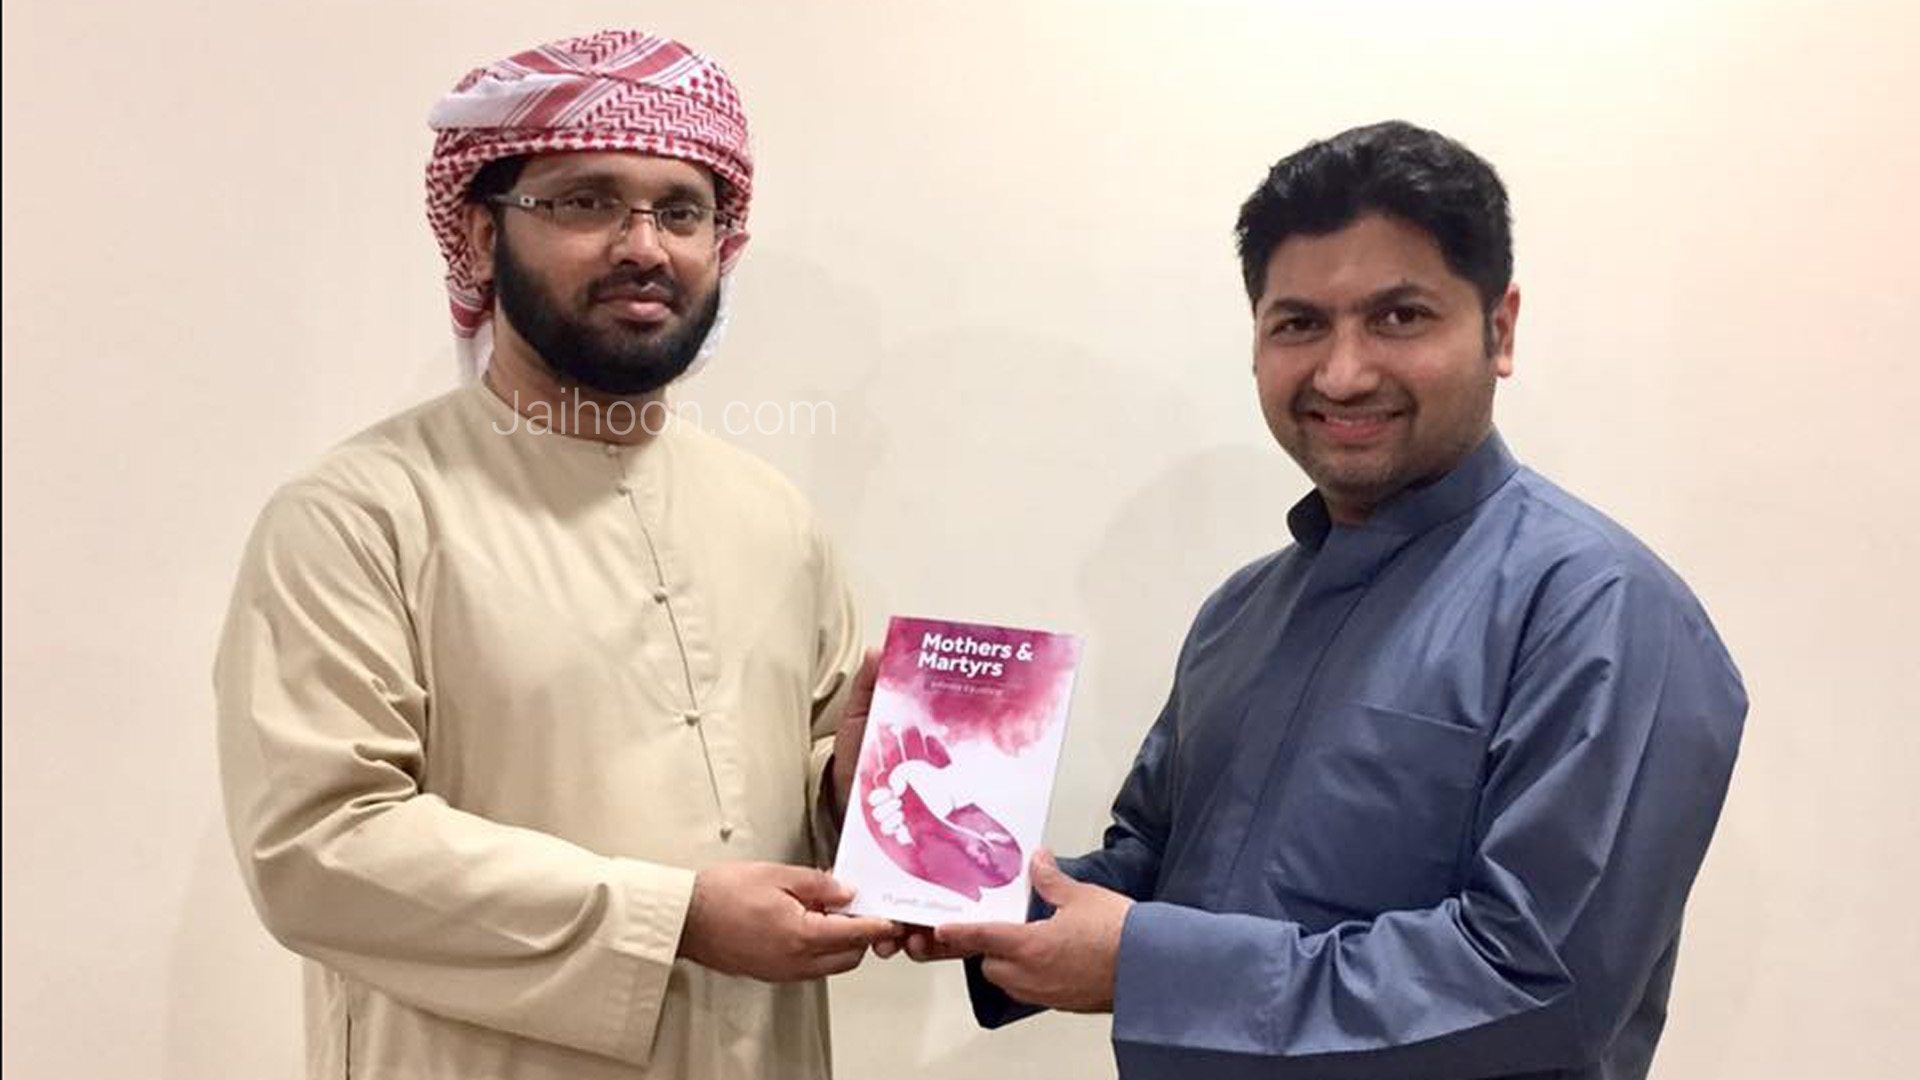 Presenting a copy of the book, Mothers & Martyrs, to prominent multilingual Islamic orator, Ustad Simsarul Haq Hudawi